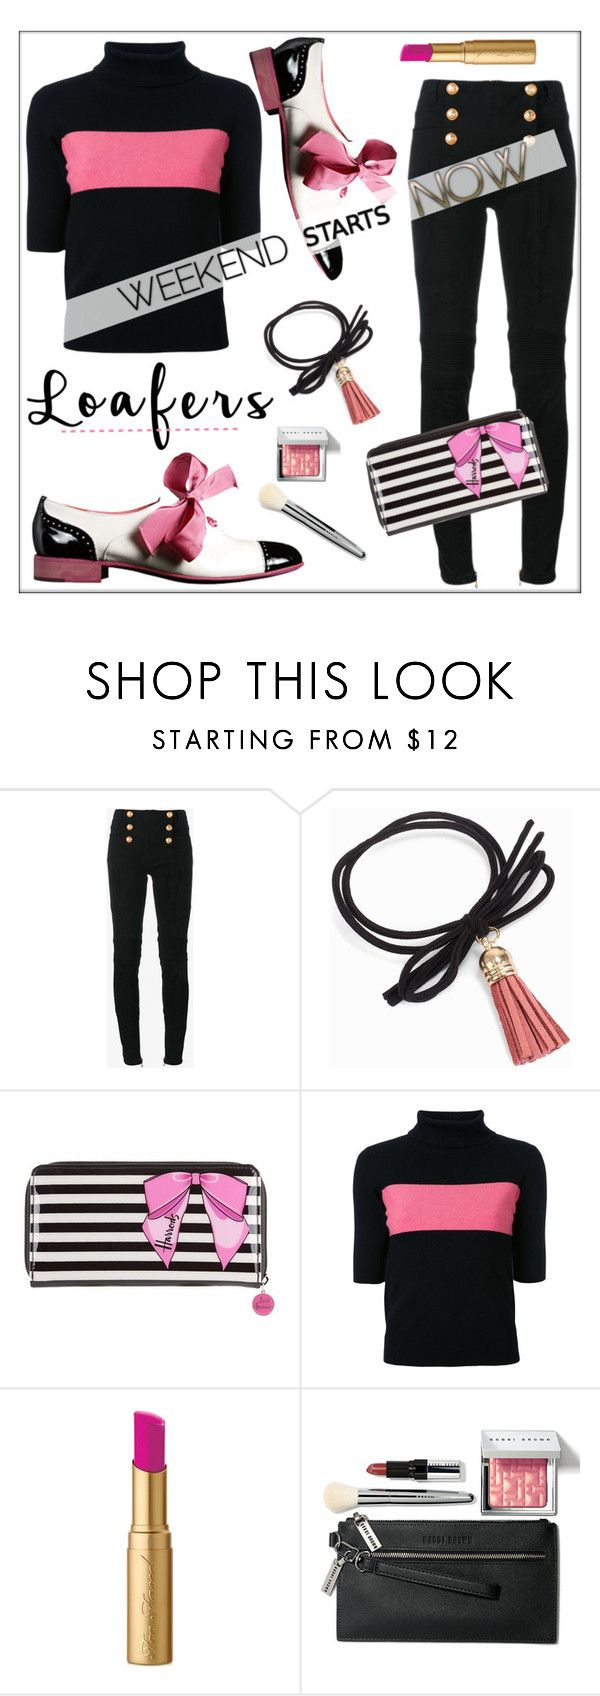 """""""Fall Trend: Loafers"""" by pat912 ❤ liked on Polyvore featuring Balmain, NLY Accessories, Moschino, Harrods, Guild Prime, Too Faced Cosmetics, Bobbi Brown Cosmetics, loafers and polyvoreeditorial"""